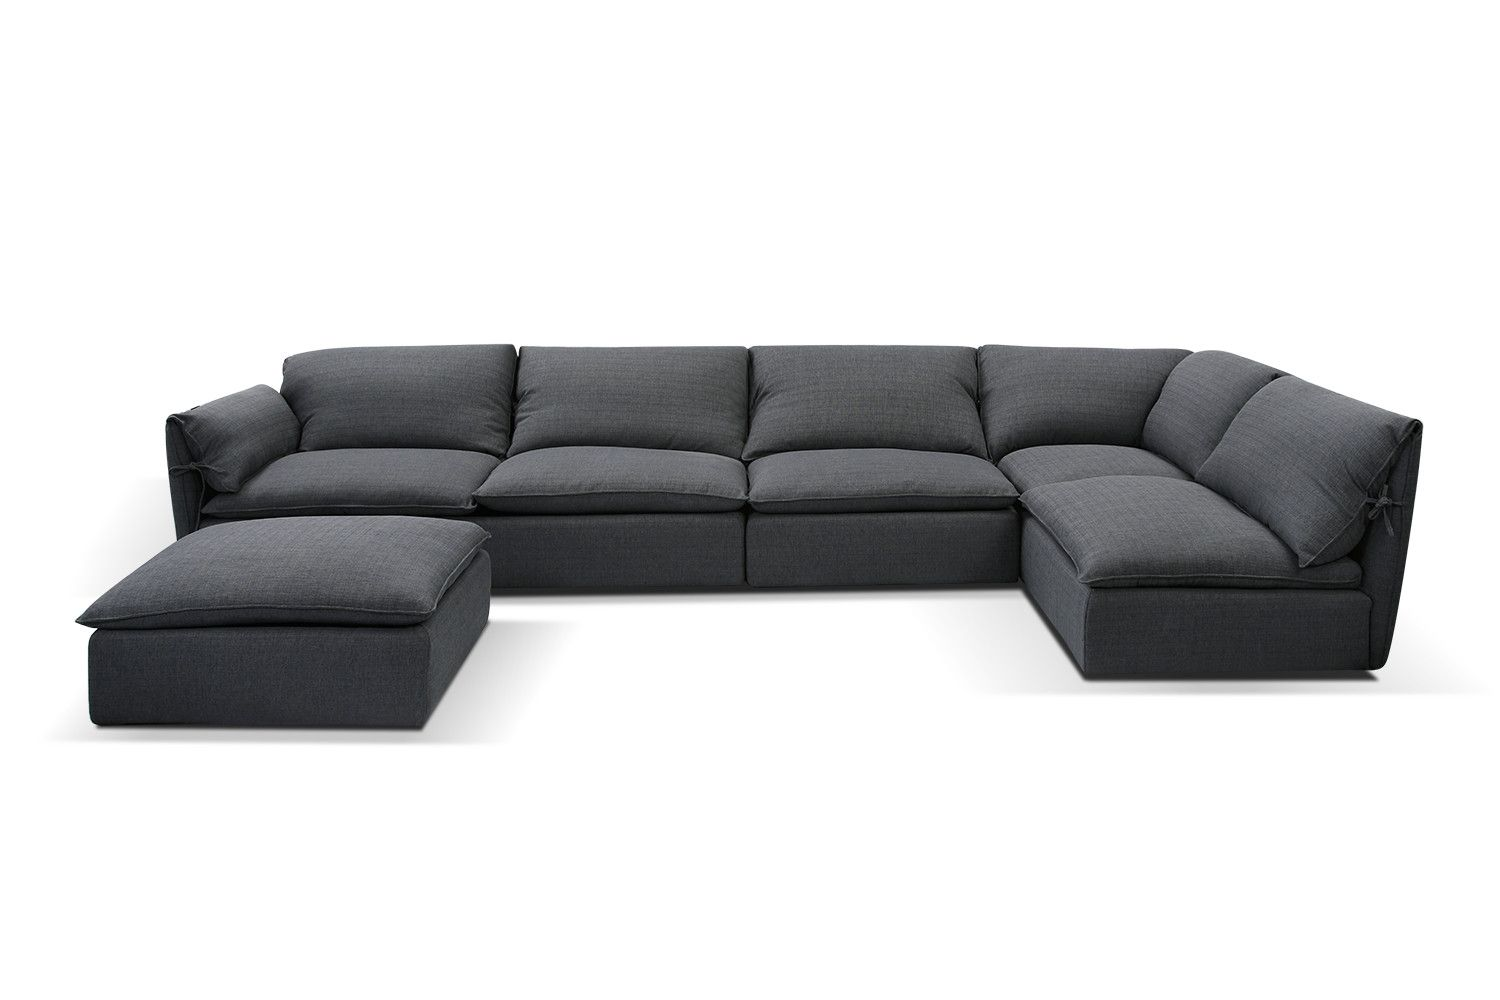 Canape D Angle Xxl Modulable Kantti Stellson Sectional Couch Couch Decor